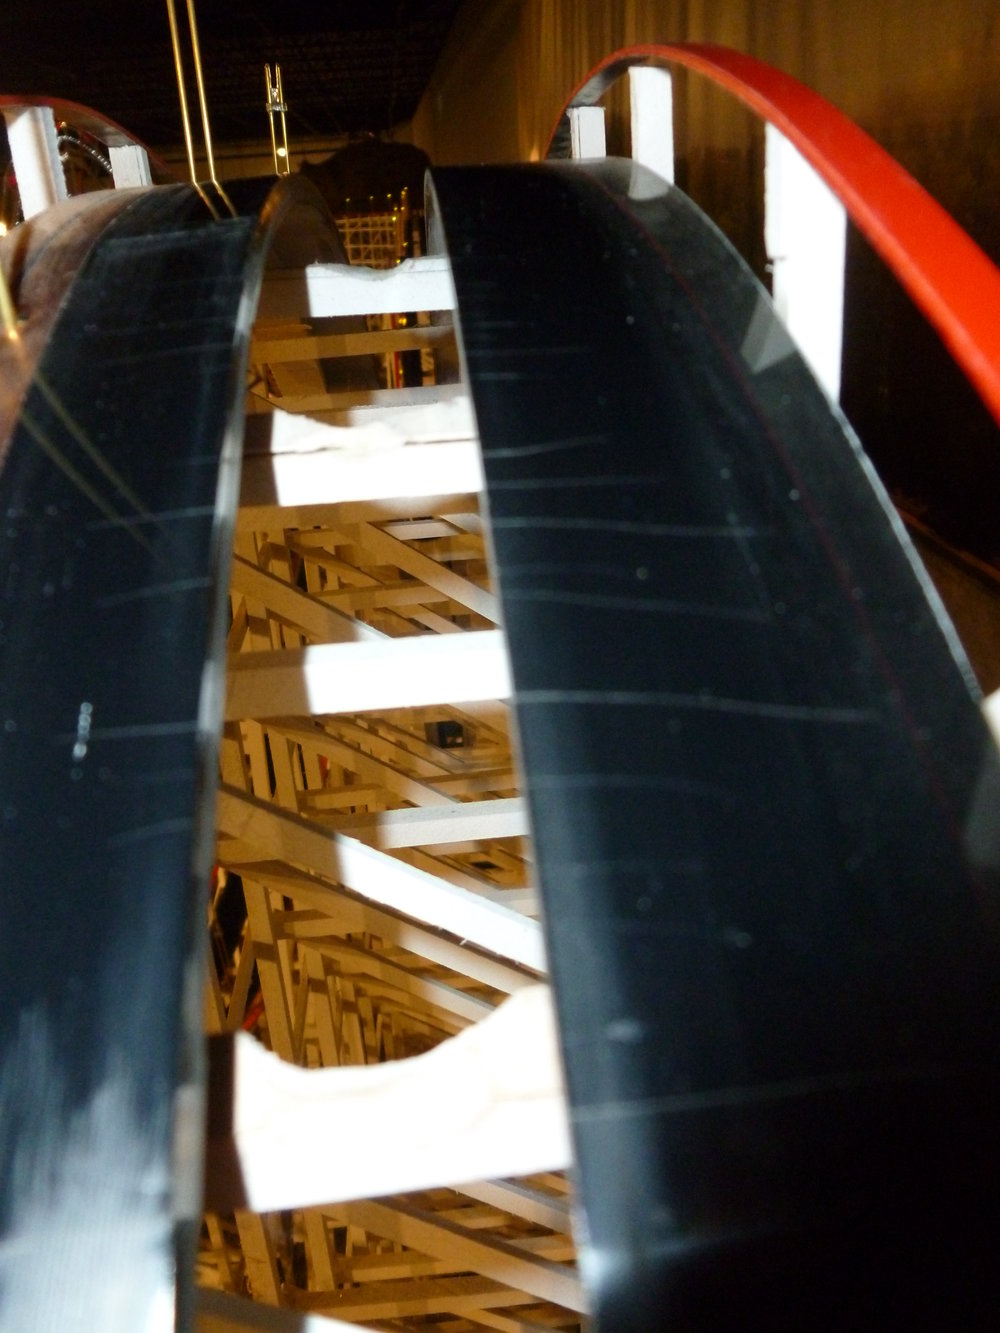 A view of the Lexan plastic track. It came colored black. They clean the track regularly with lubricant to keep it clean and dust free as much as possible. Also note the notches in the center of the crossties so the under carriage doesn't hit.